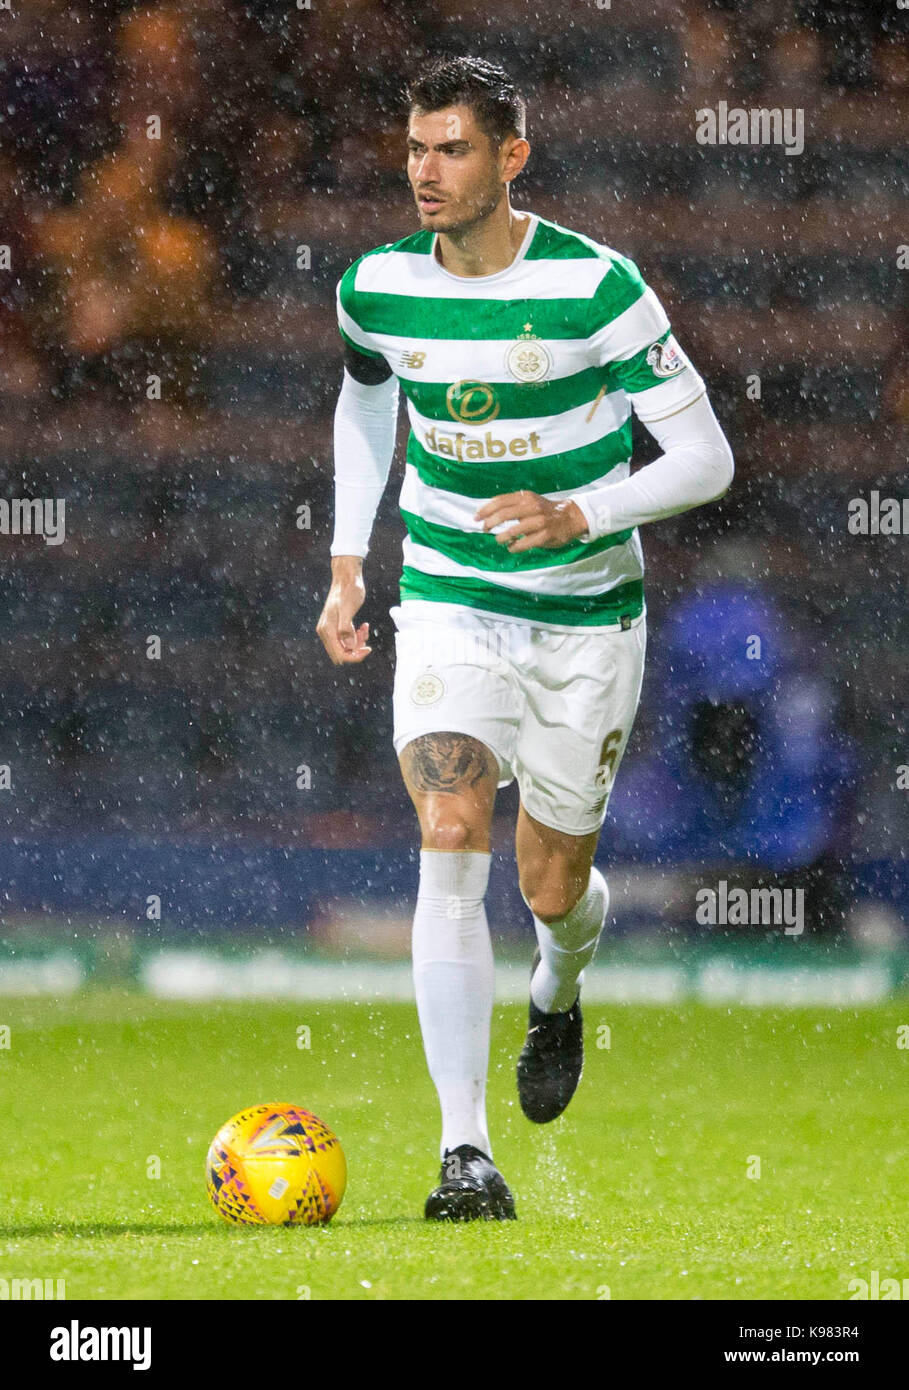 Celtic's Nir Bitton during the Betfred Cup, Quarter Final match at Dens Park, Dundee. - Stock Image